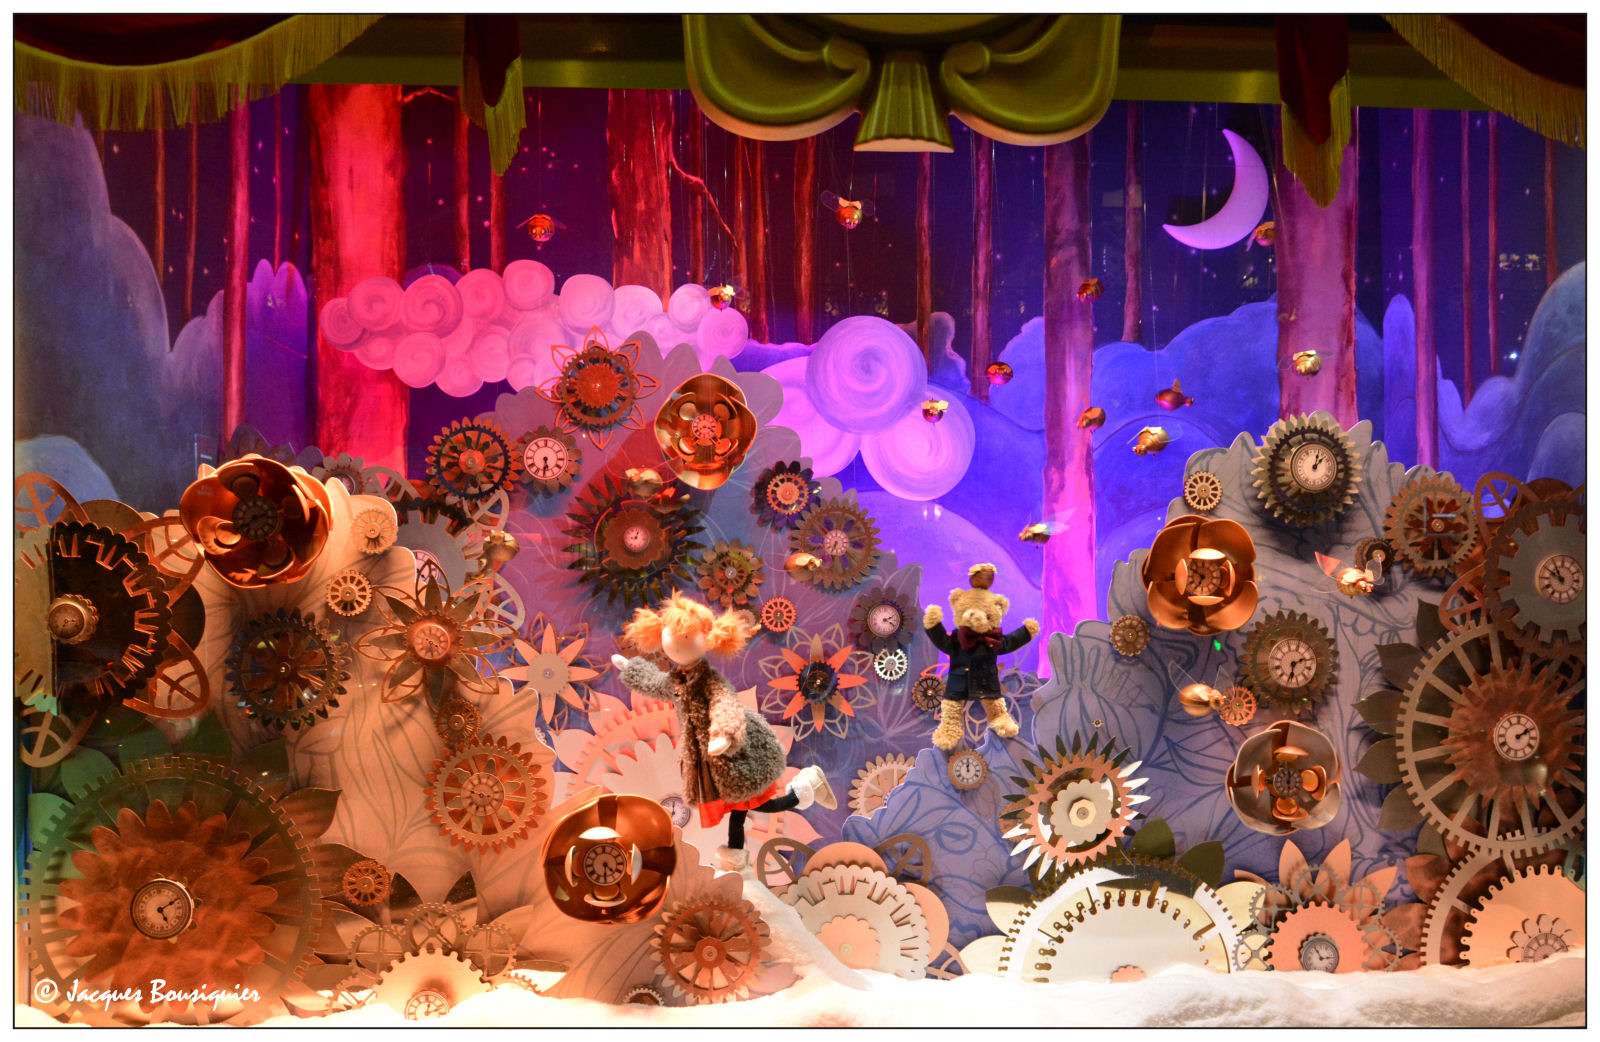 Galeries lafayette paris christmas 2013 international visual - Vitrines galeries lafayette 2016 ...